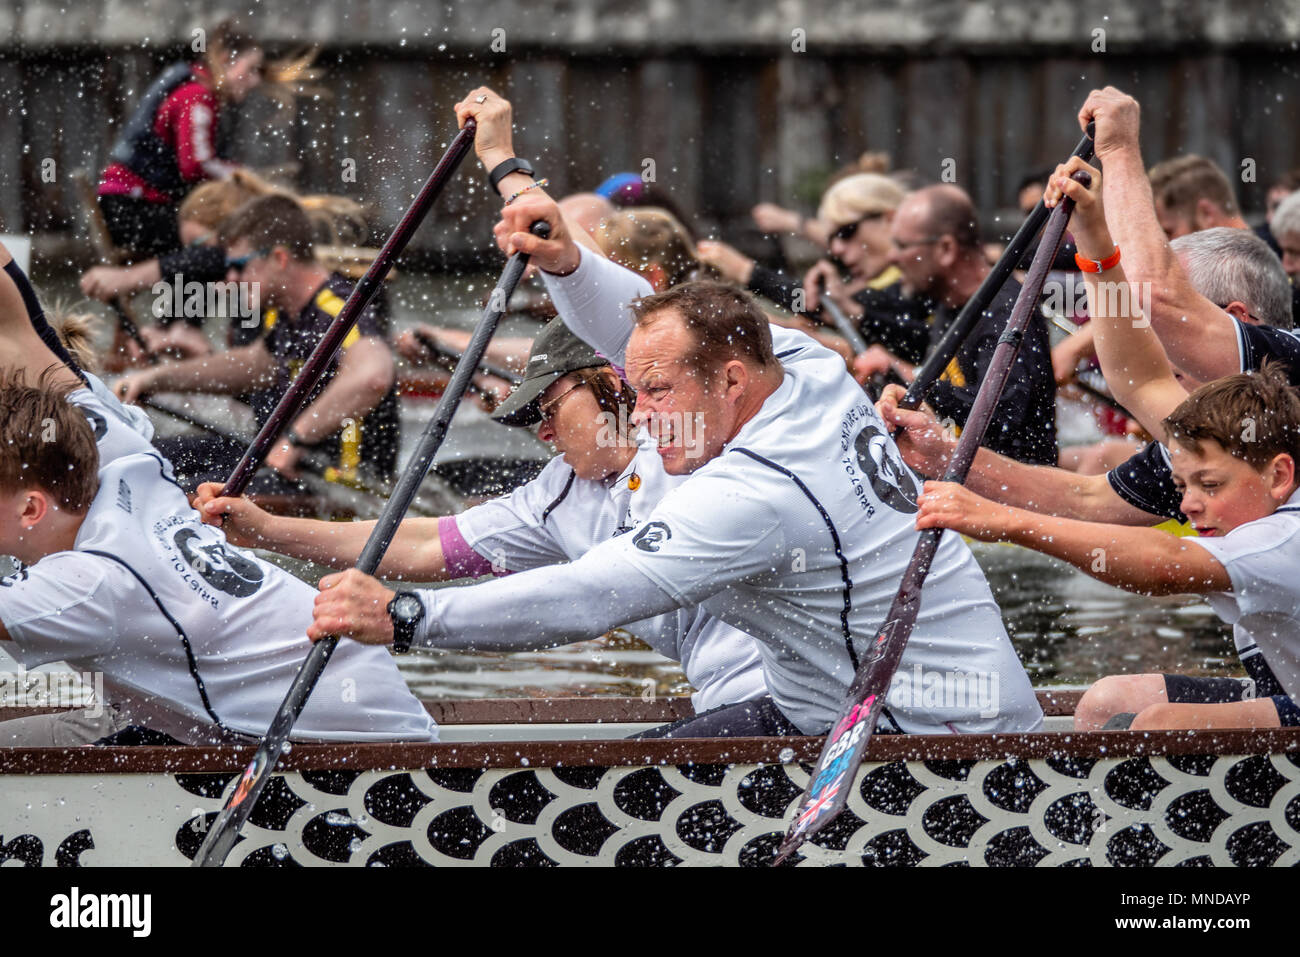 Dragon boat racing on Bristol floating harbour where teams of amateur rowers frantically paddle decorated canoes to raise money for charity Bristol UK - Stock Image